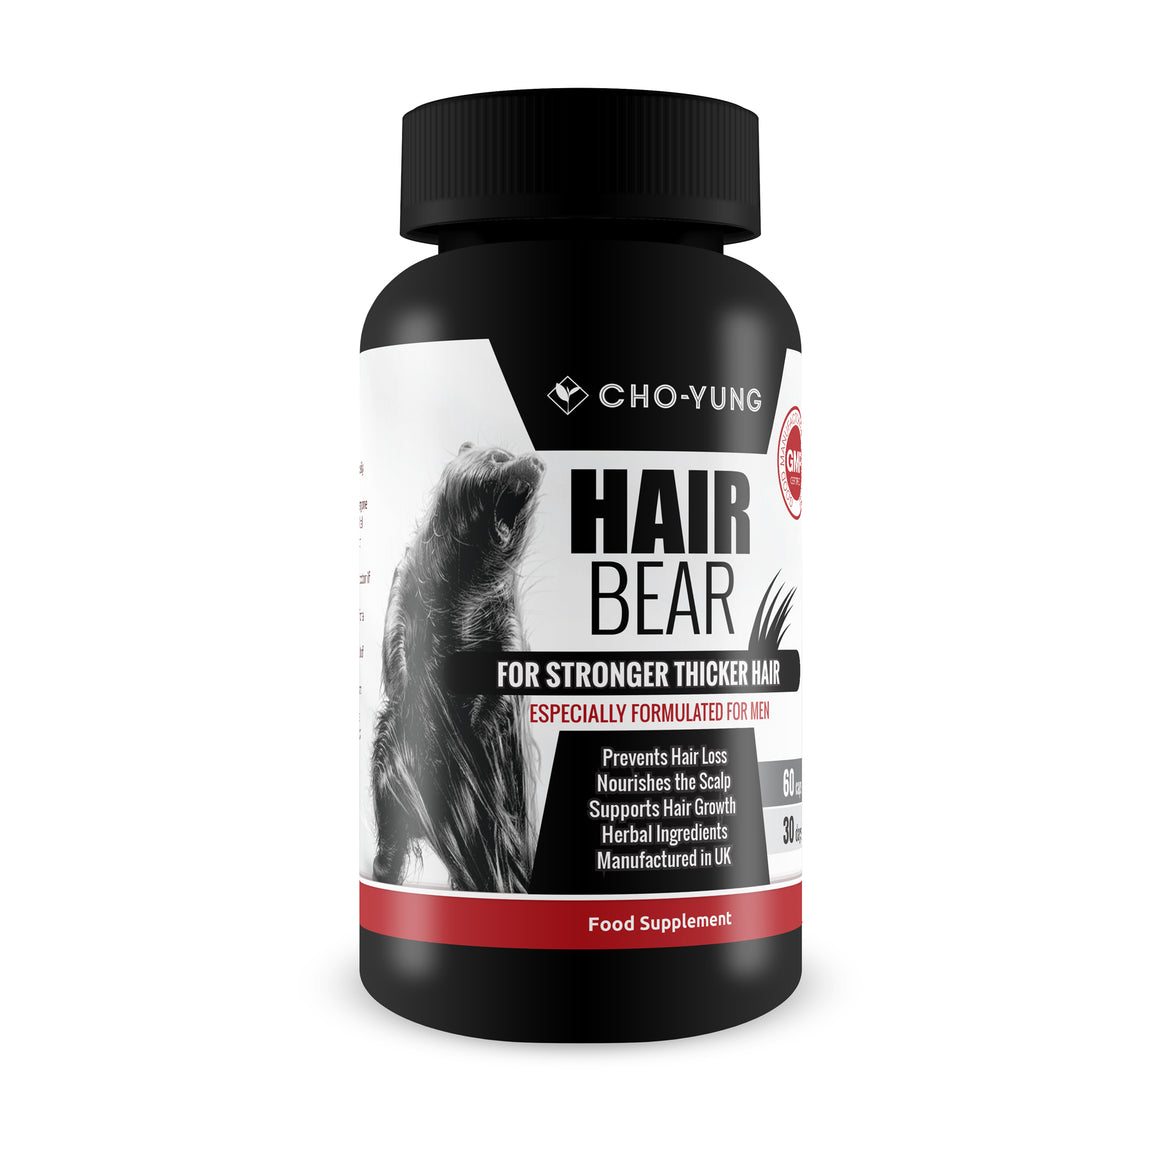 Hair Bear - Hair & Beard Nutrition for Men - Facial, Receding, Hair Loss